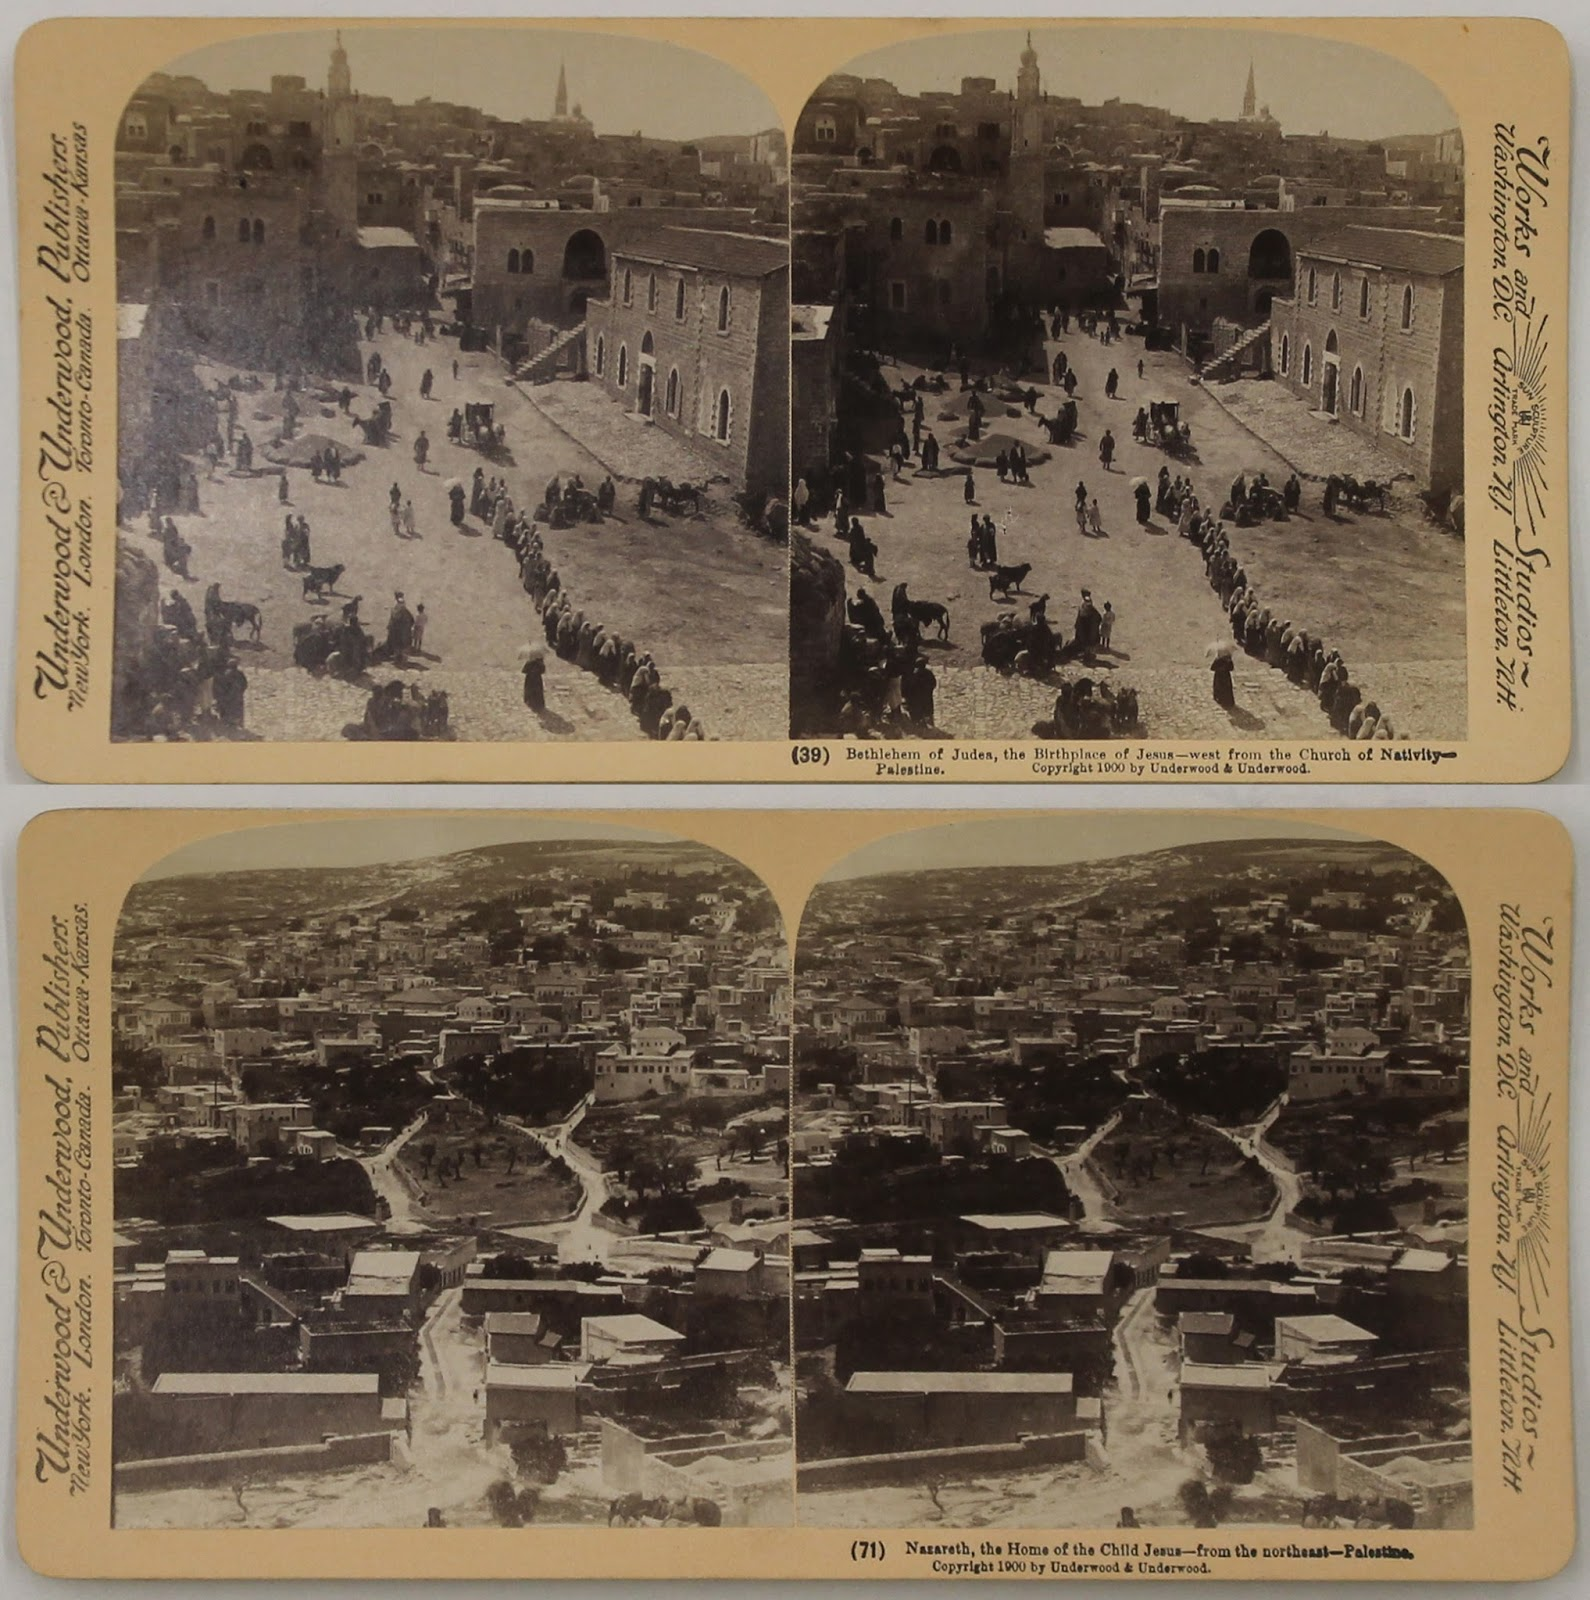 Stereoscopic images of the Holy Land